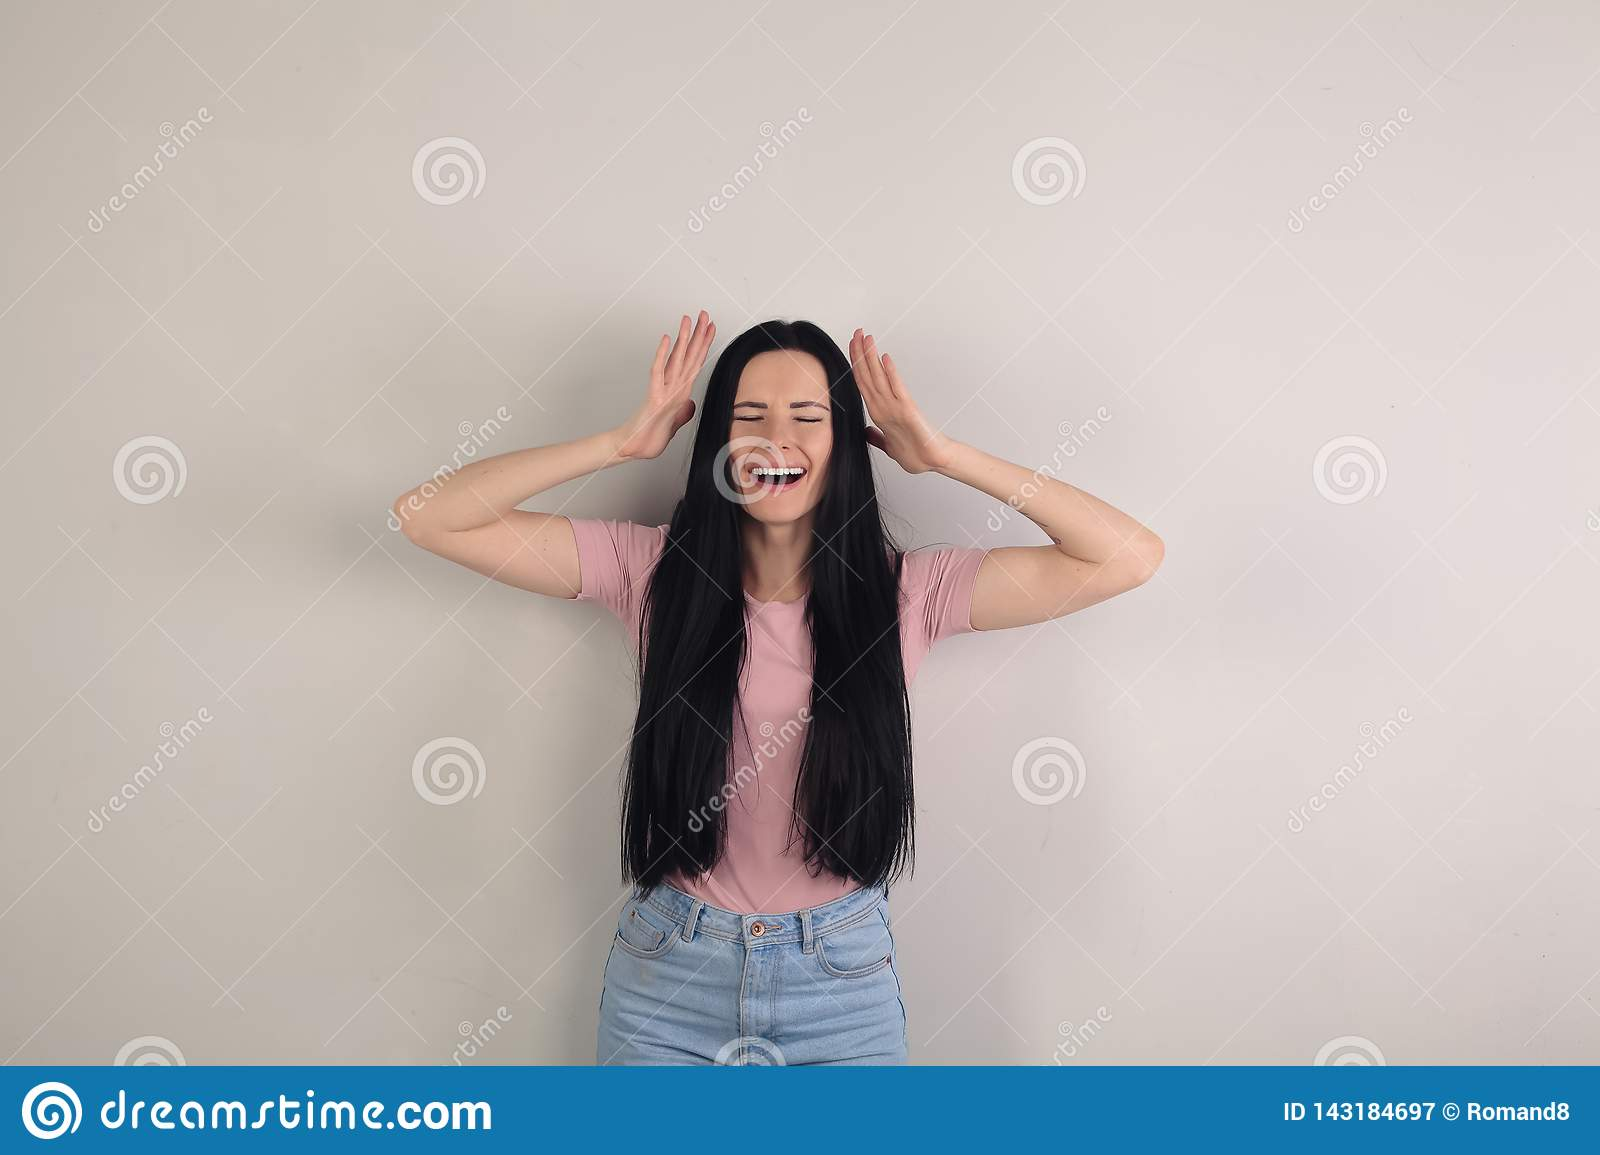 Attractive young brunette woman with long hair is standing by the grey background holding her hands up by the head and screaming.